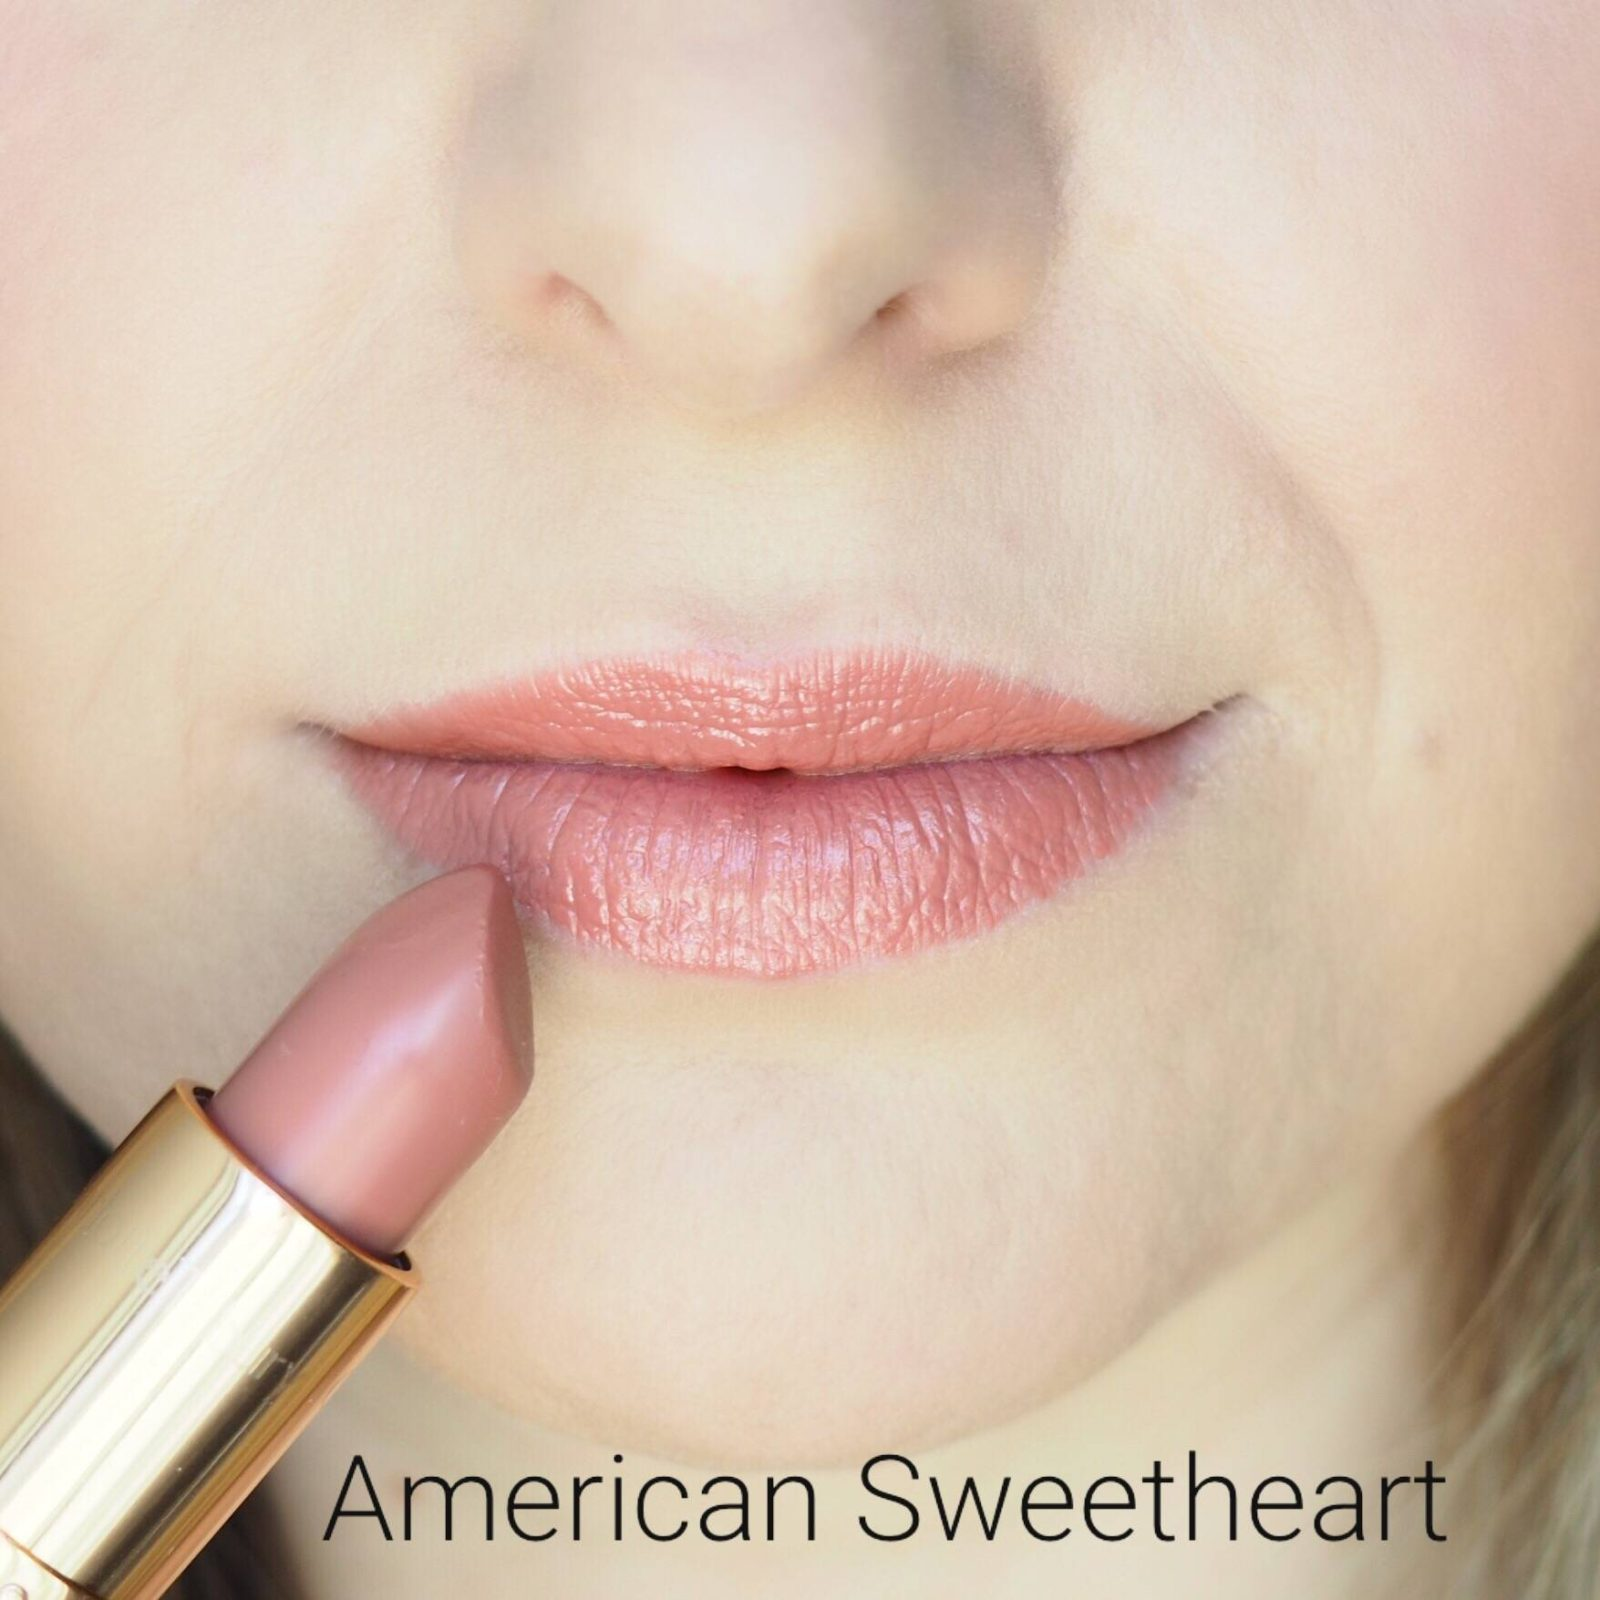 Charlotte Tilbury American Sweetheart Lipstick Swatches